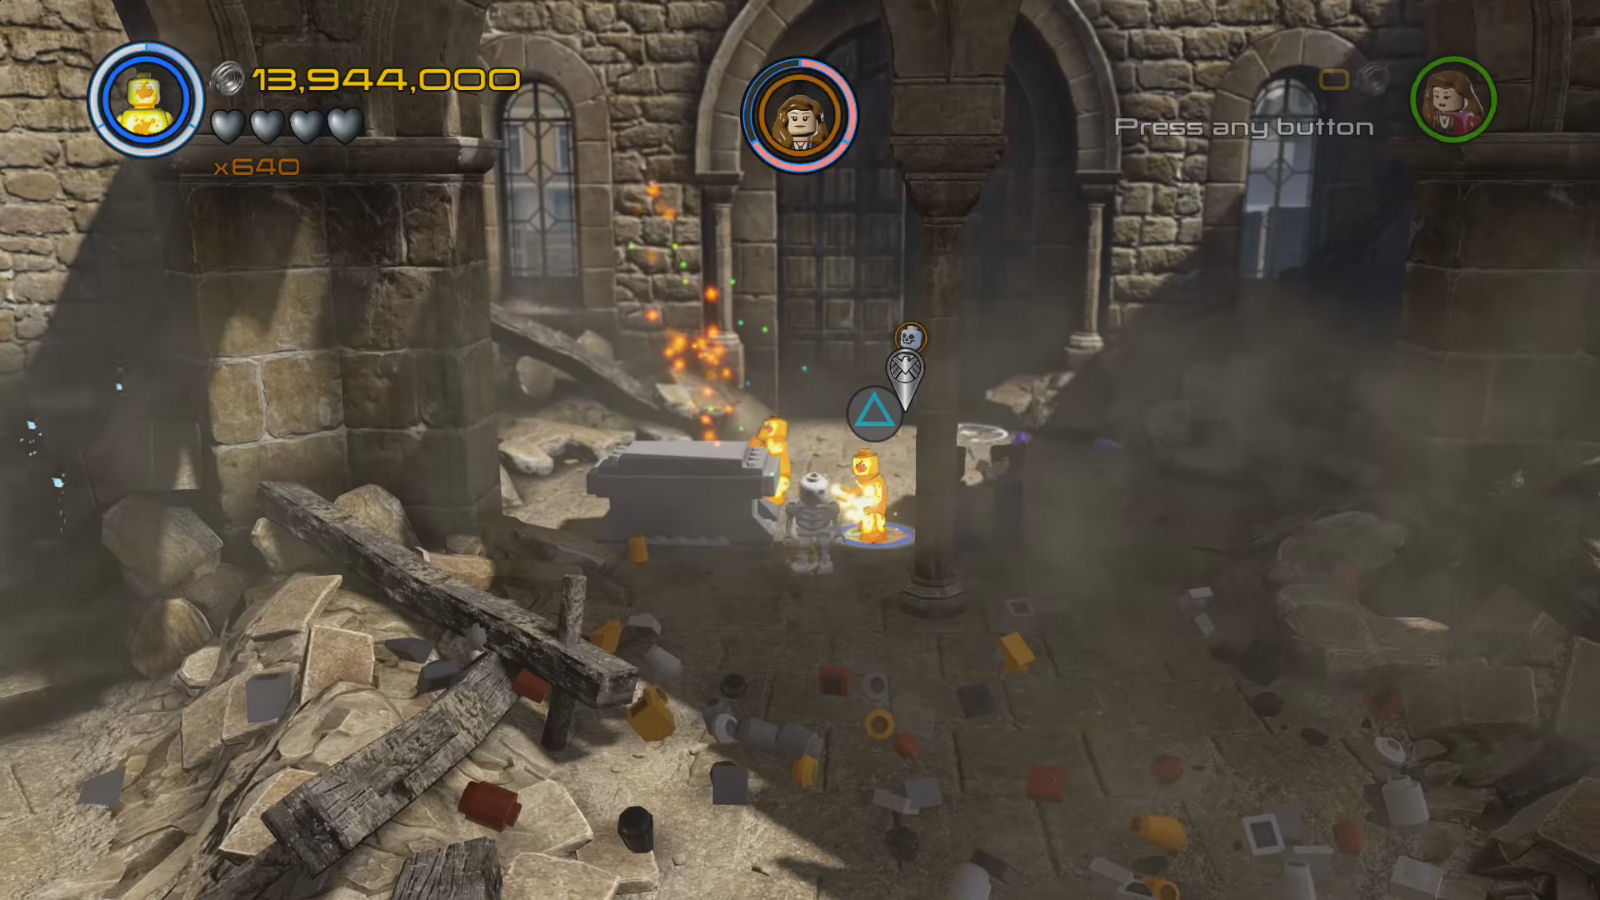 Lego Marvel's Avengers Red Brick 16: Collect Ghost Studs Location